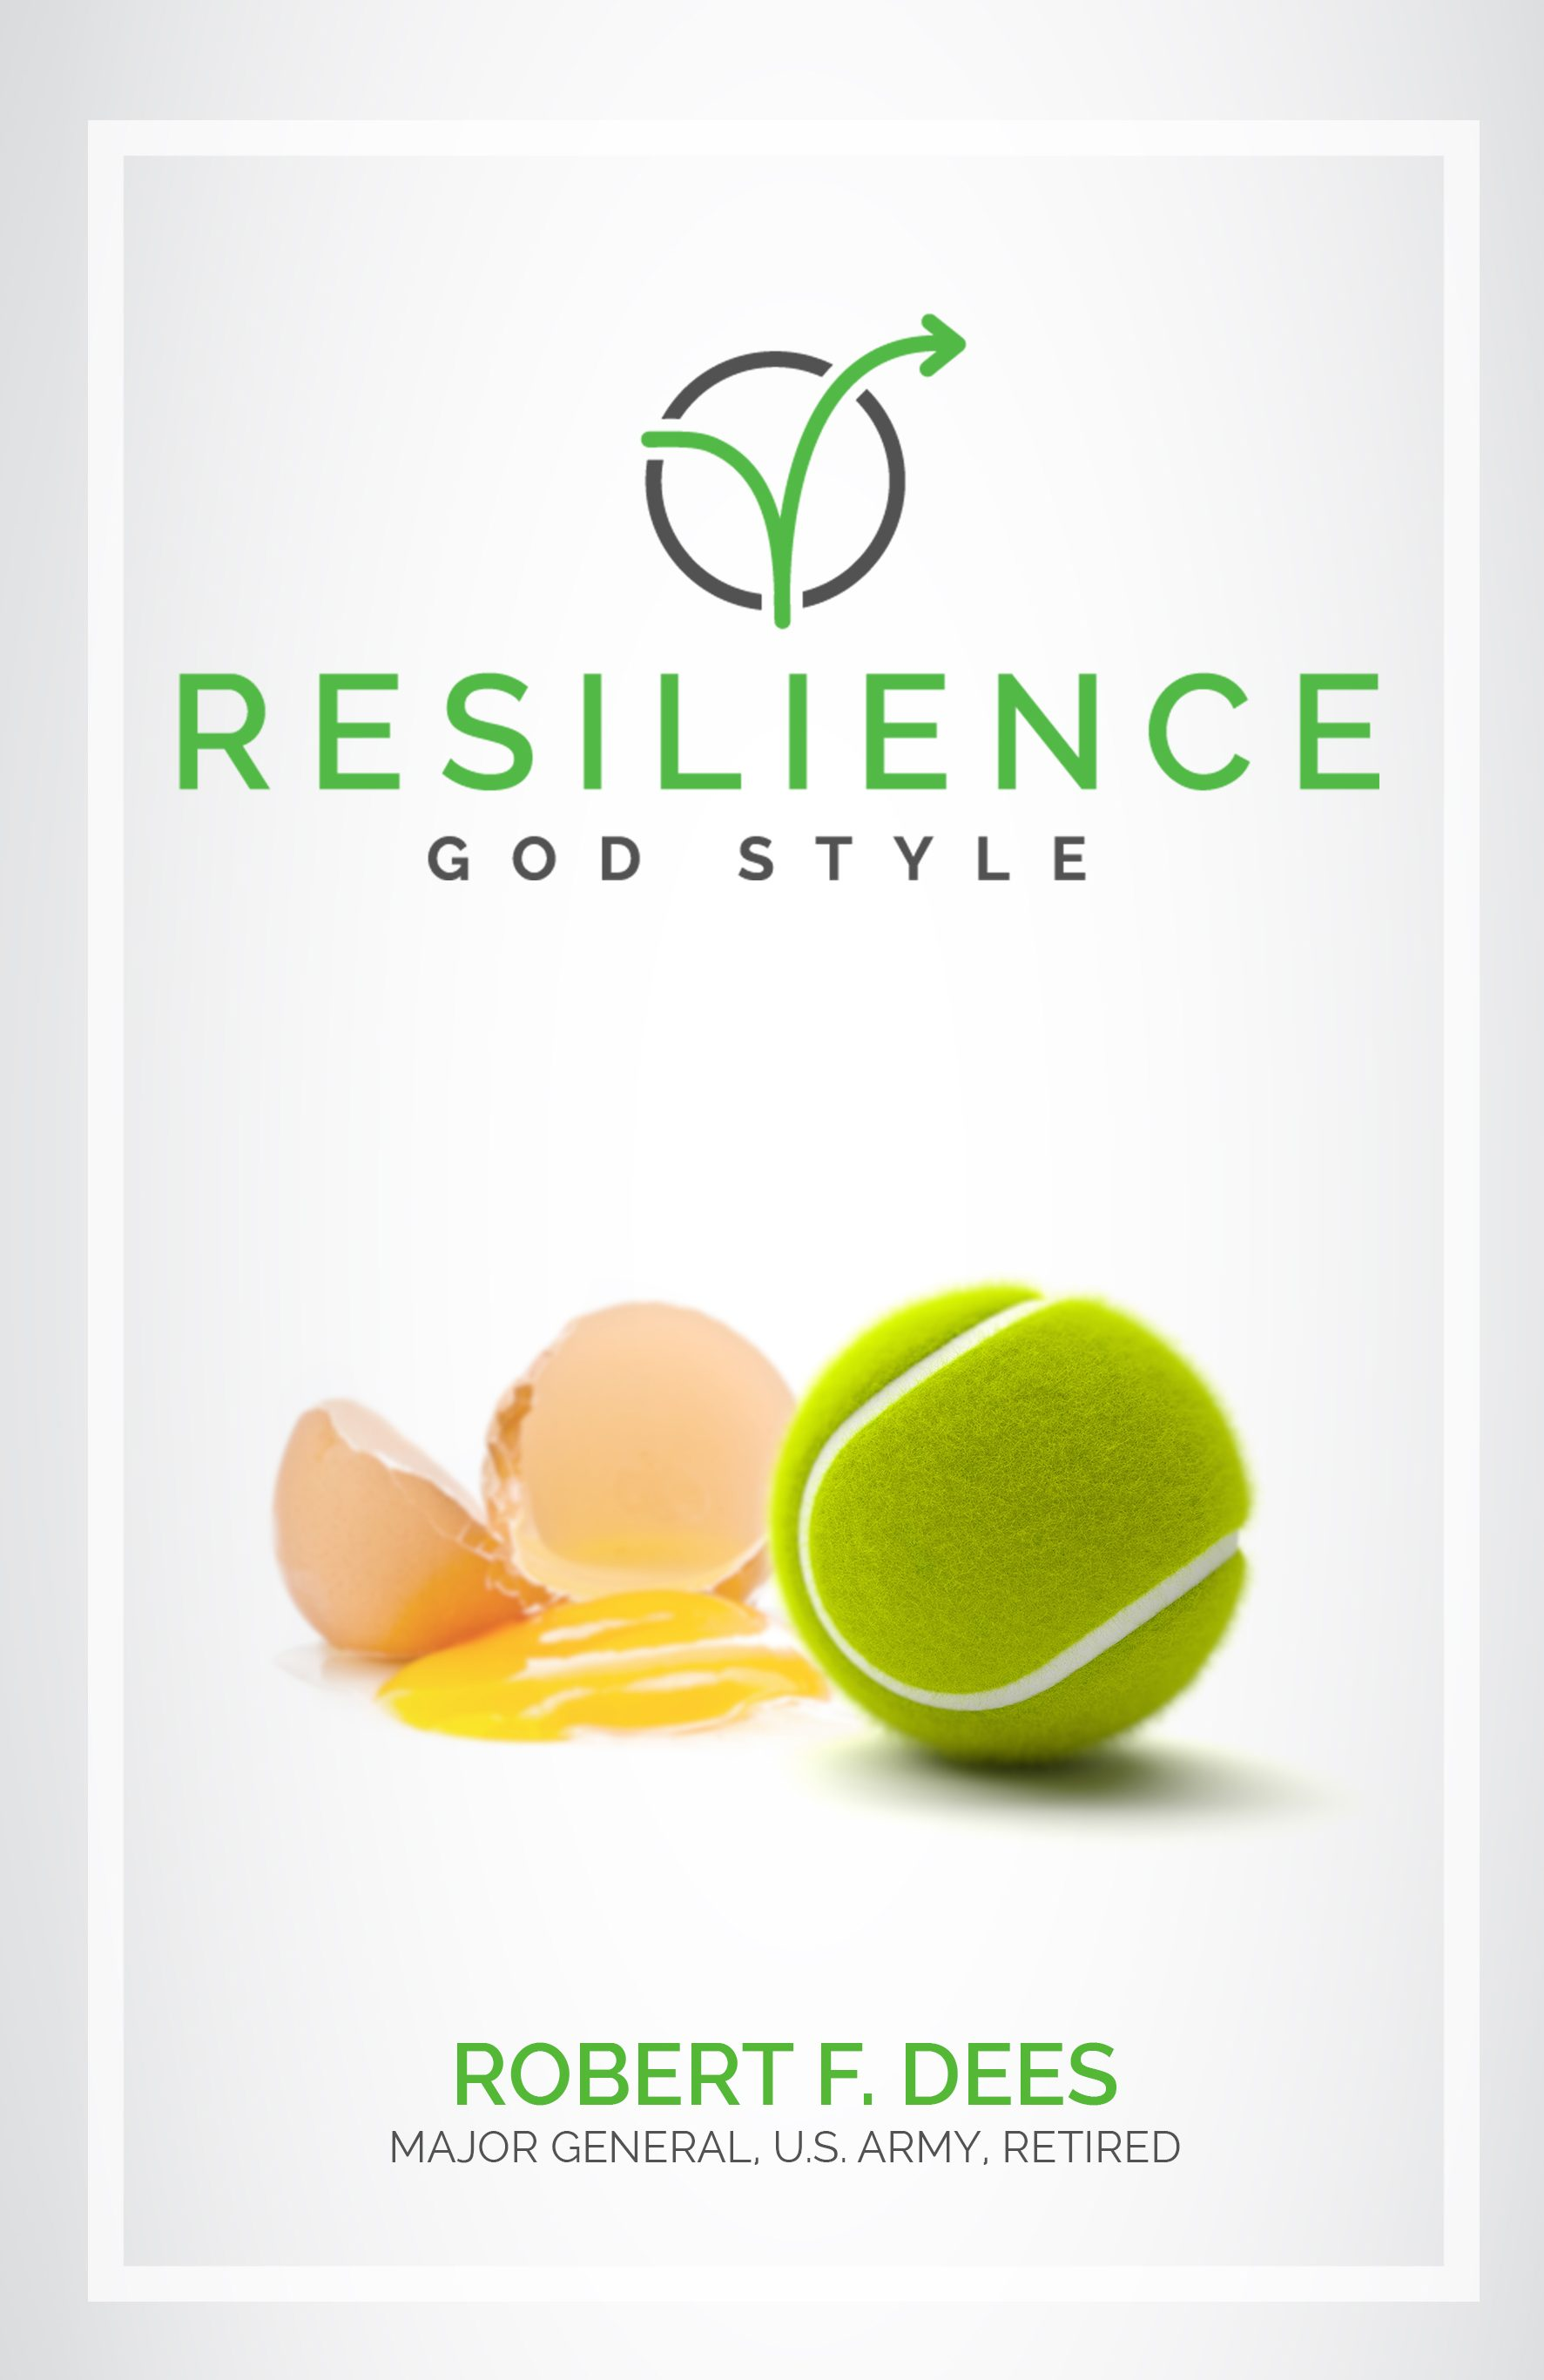 http://creativeteampublishing.com/wp-content/uploads/2019/05/Resilience-God-Style-book-cover-v1.2-e1559234965987-664x1024.jpg